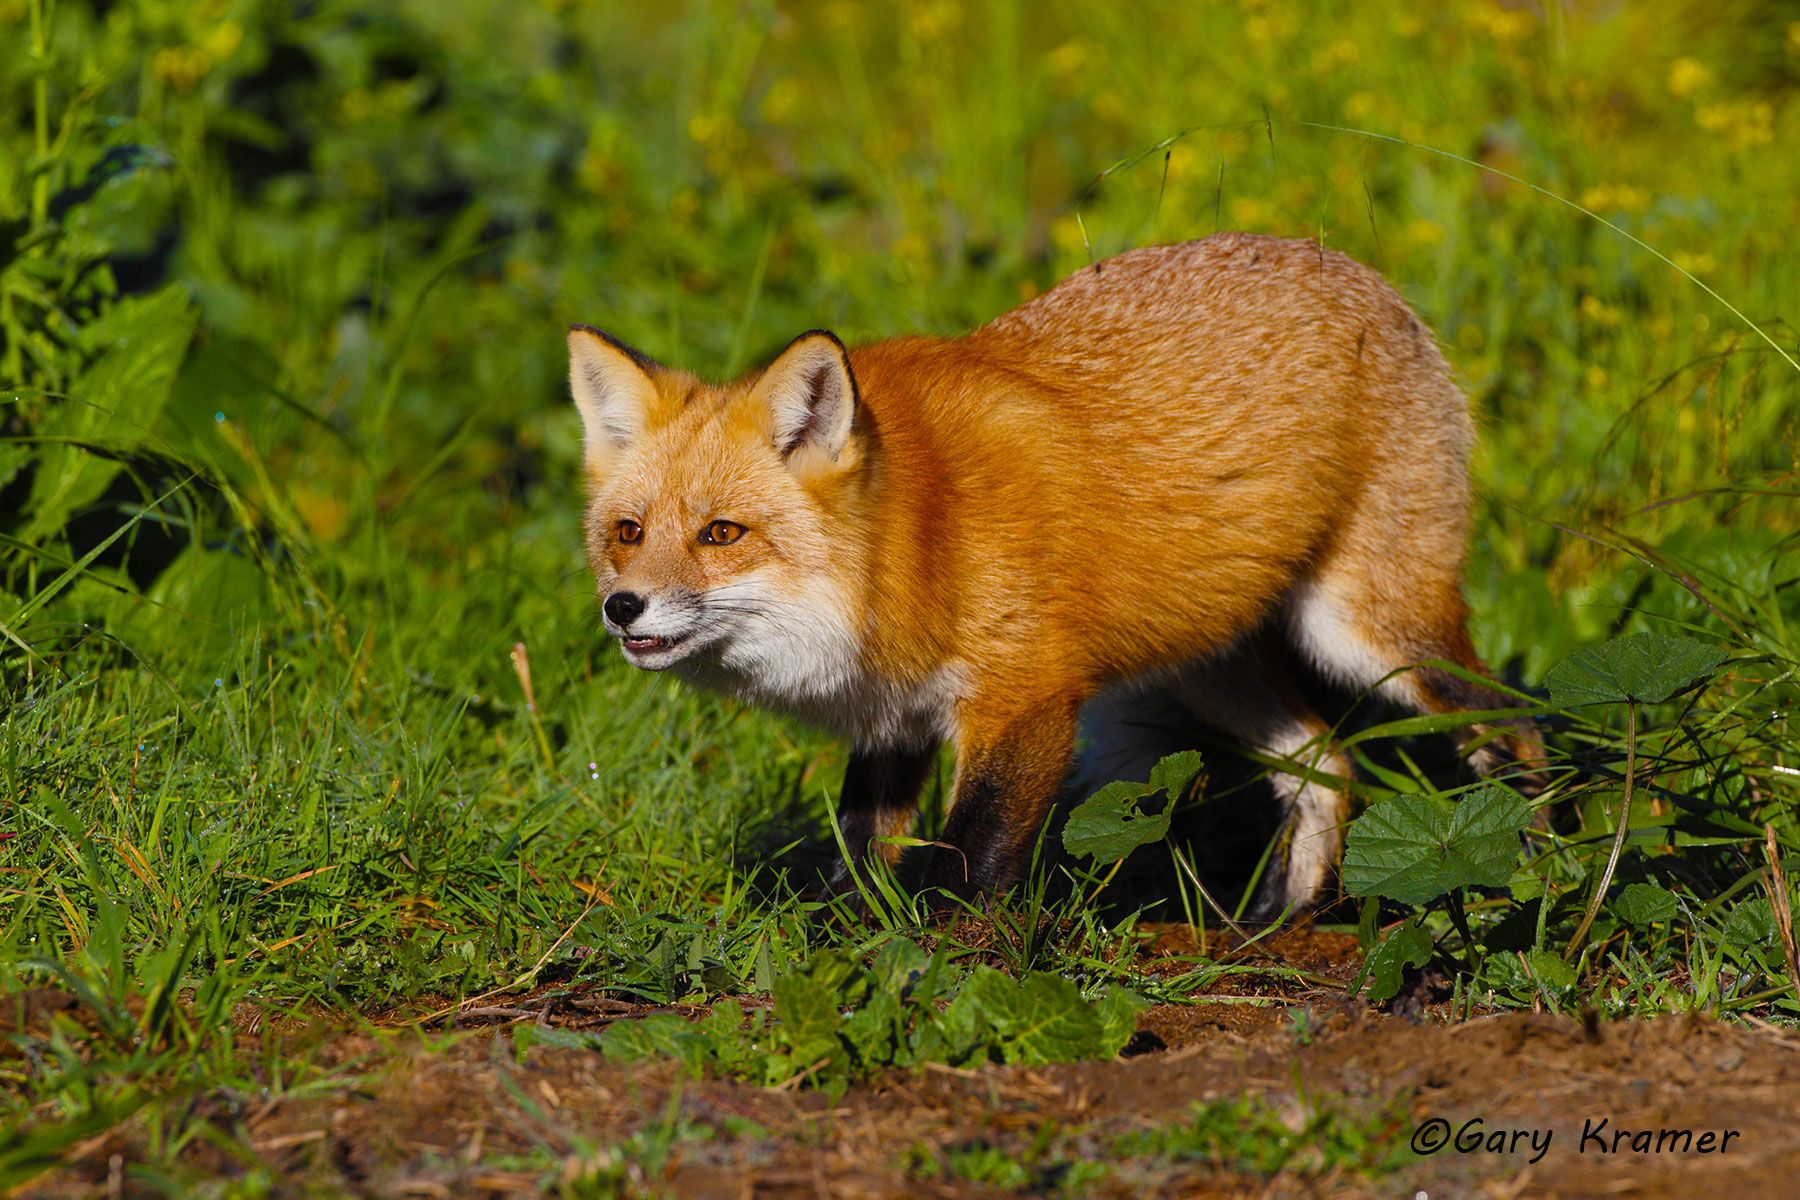 Red Fox (Vulpes fulva) - NMFr#773d